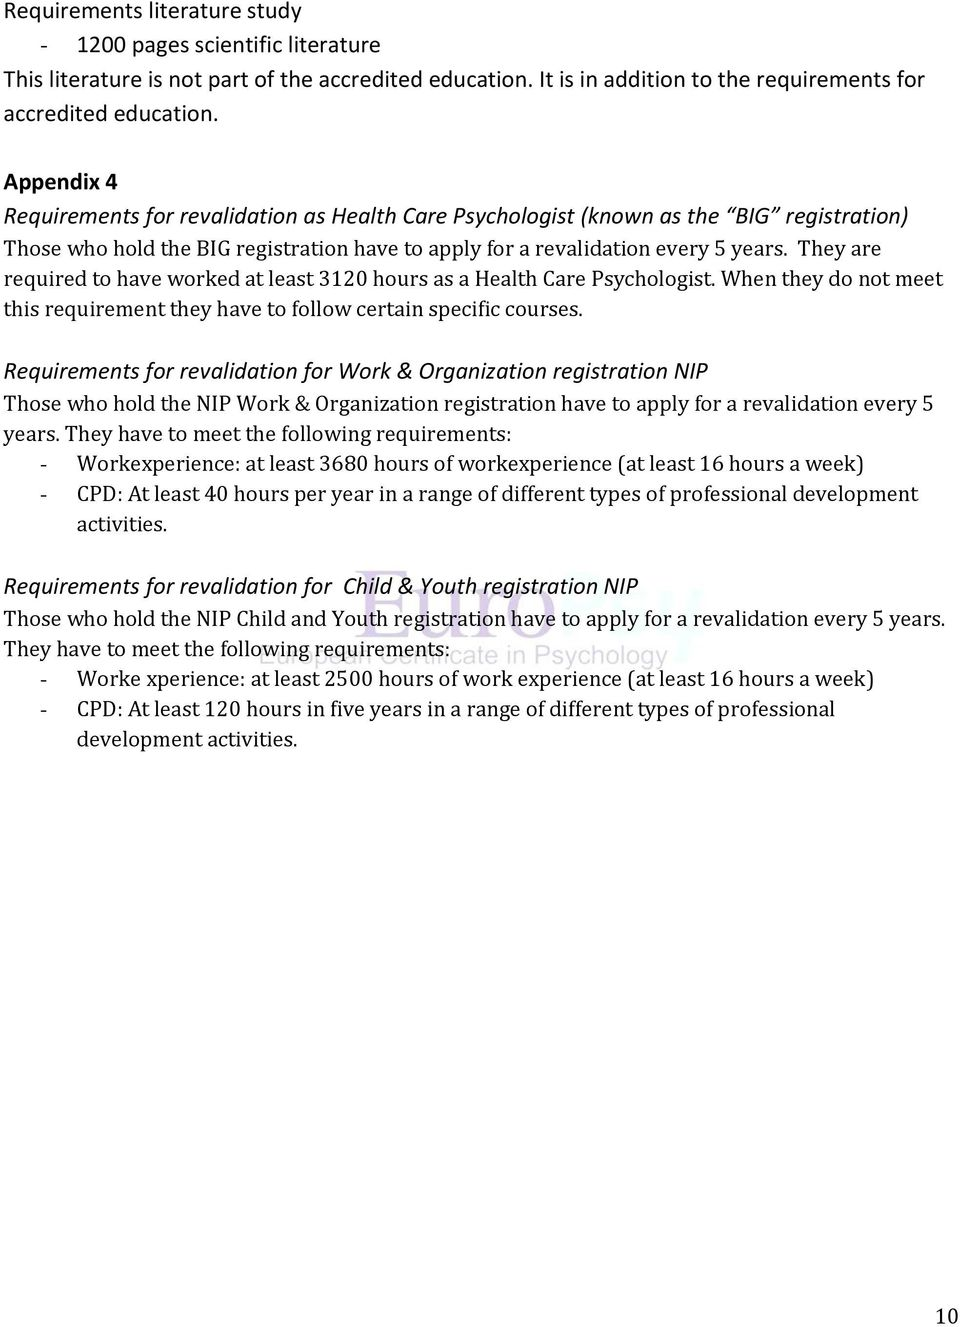 They are required to have worked at least 3120 hours as a Health Care Psychologist. When they do not meet this requirement they have to follow certain specific courses.